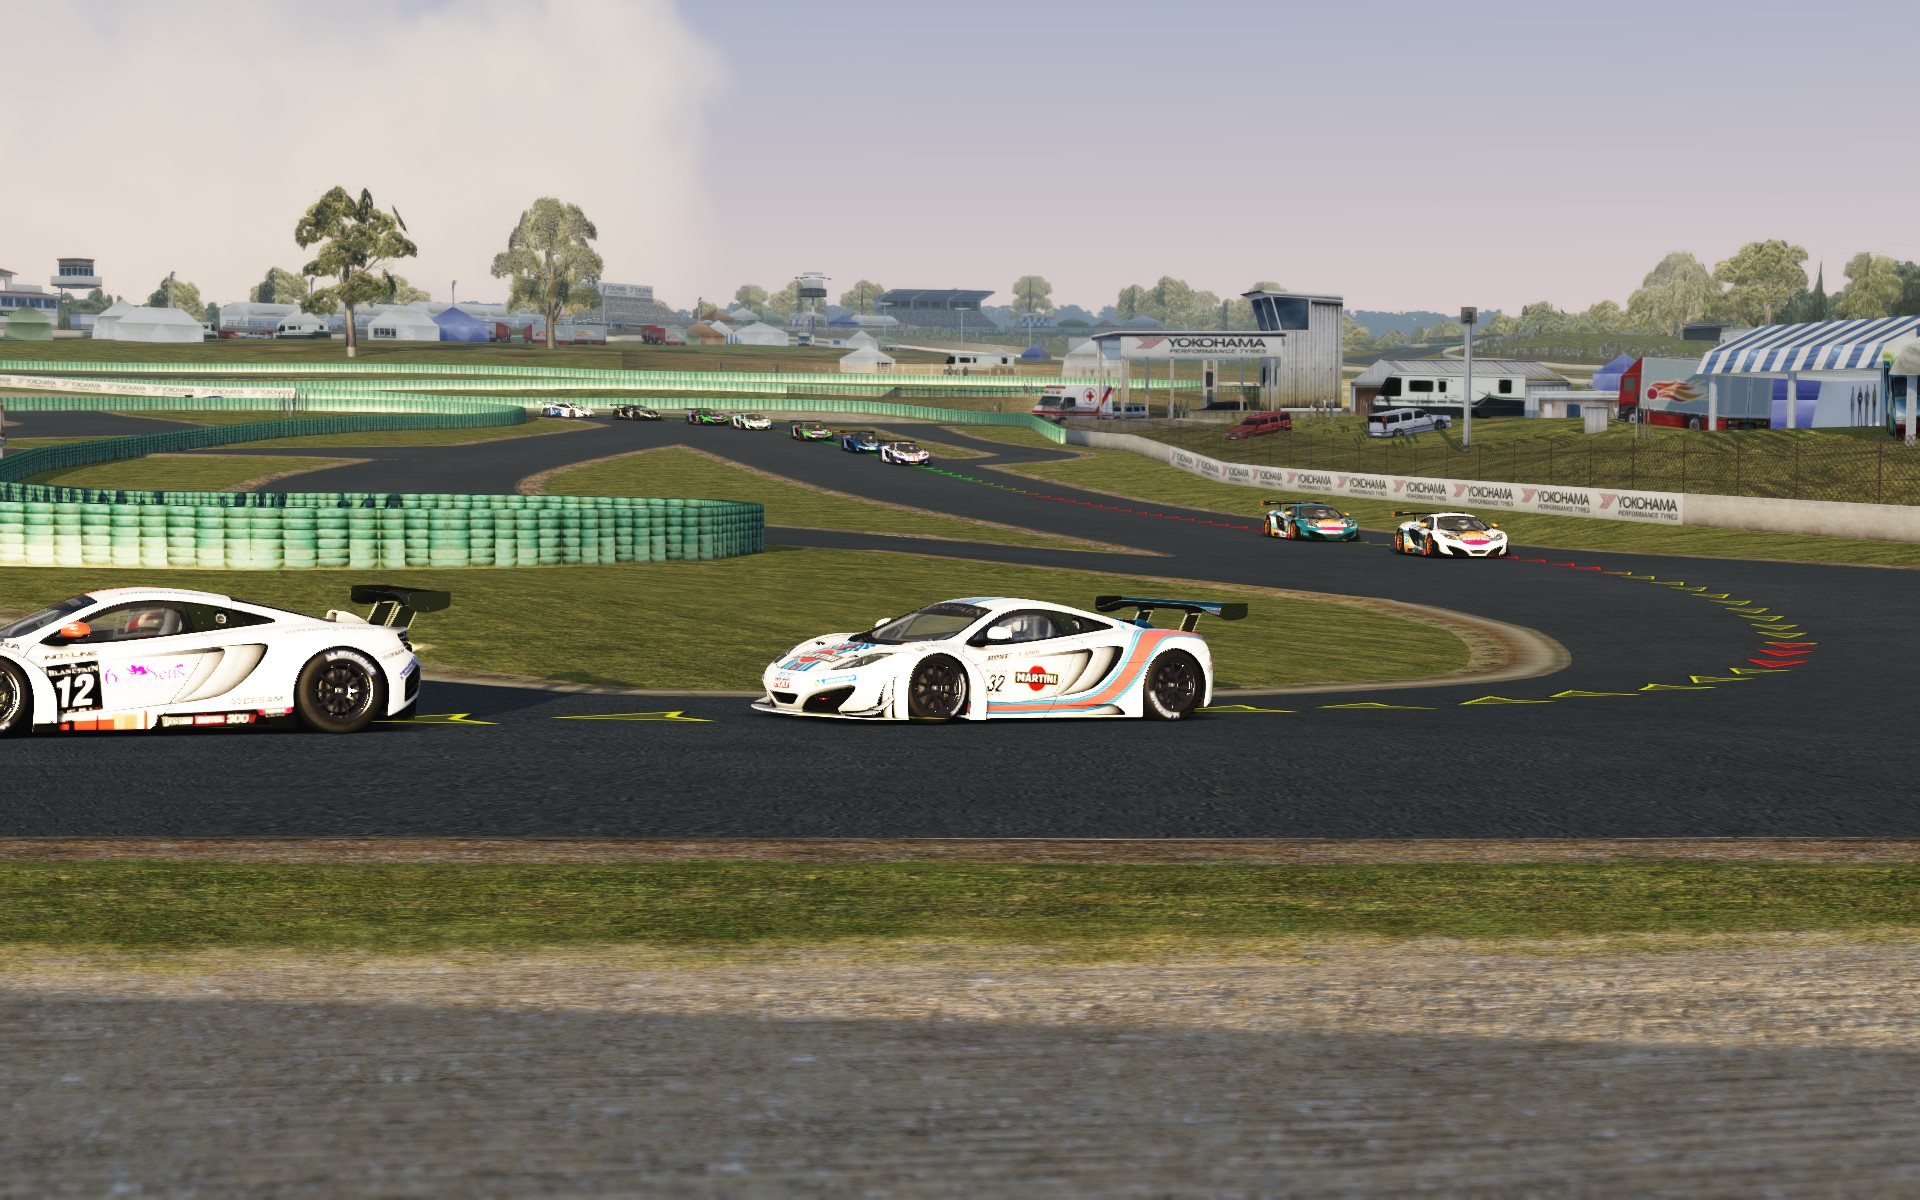 Screenshot_mclaren_mp412c_gt3_oranpark_26-6-115-20-32-31.jpg